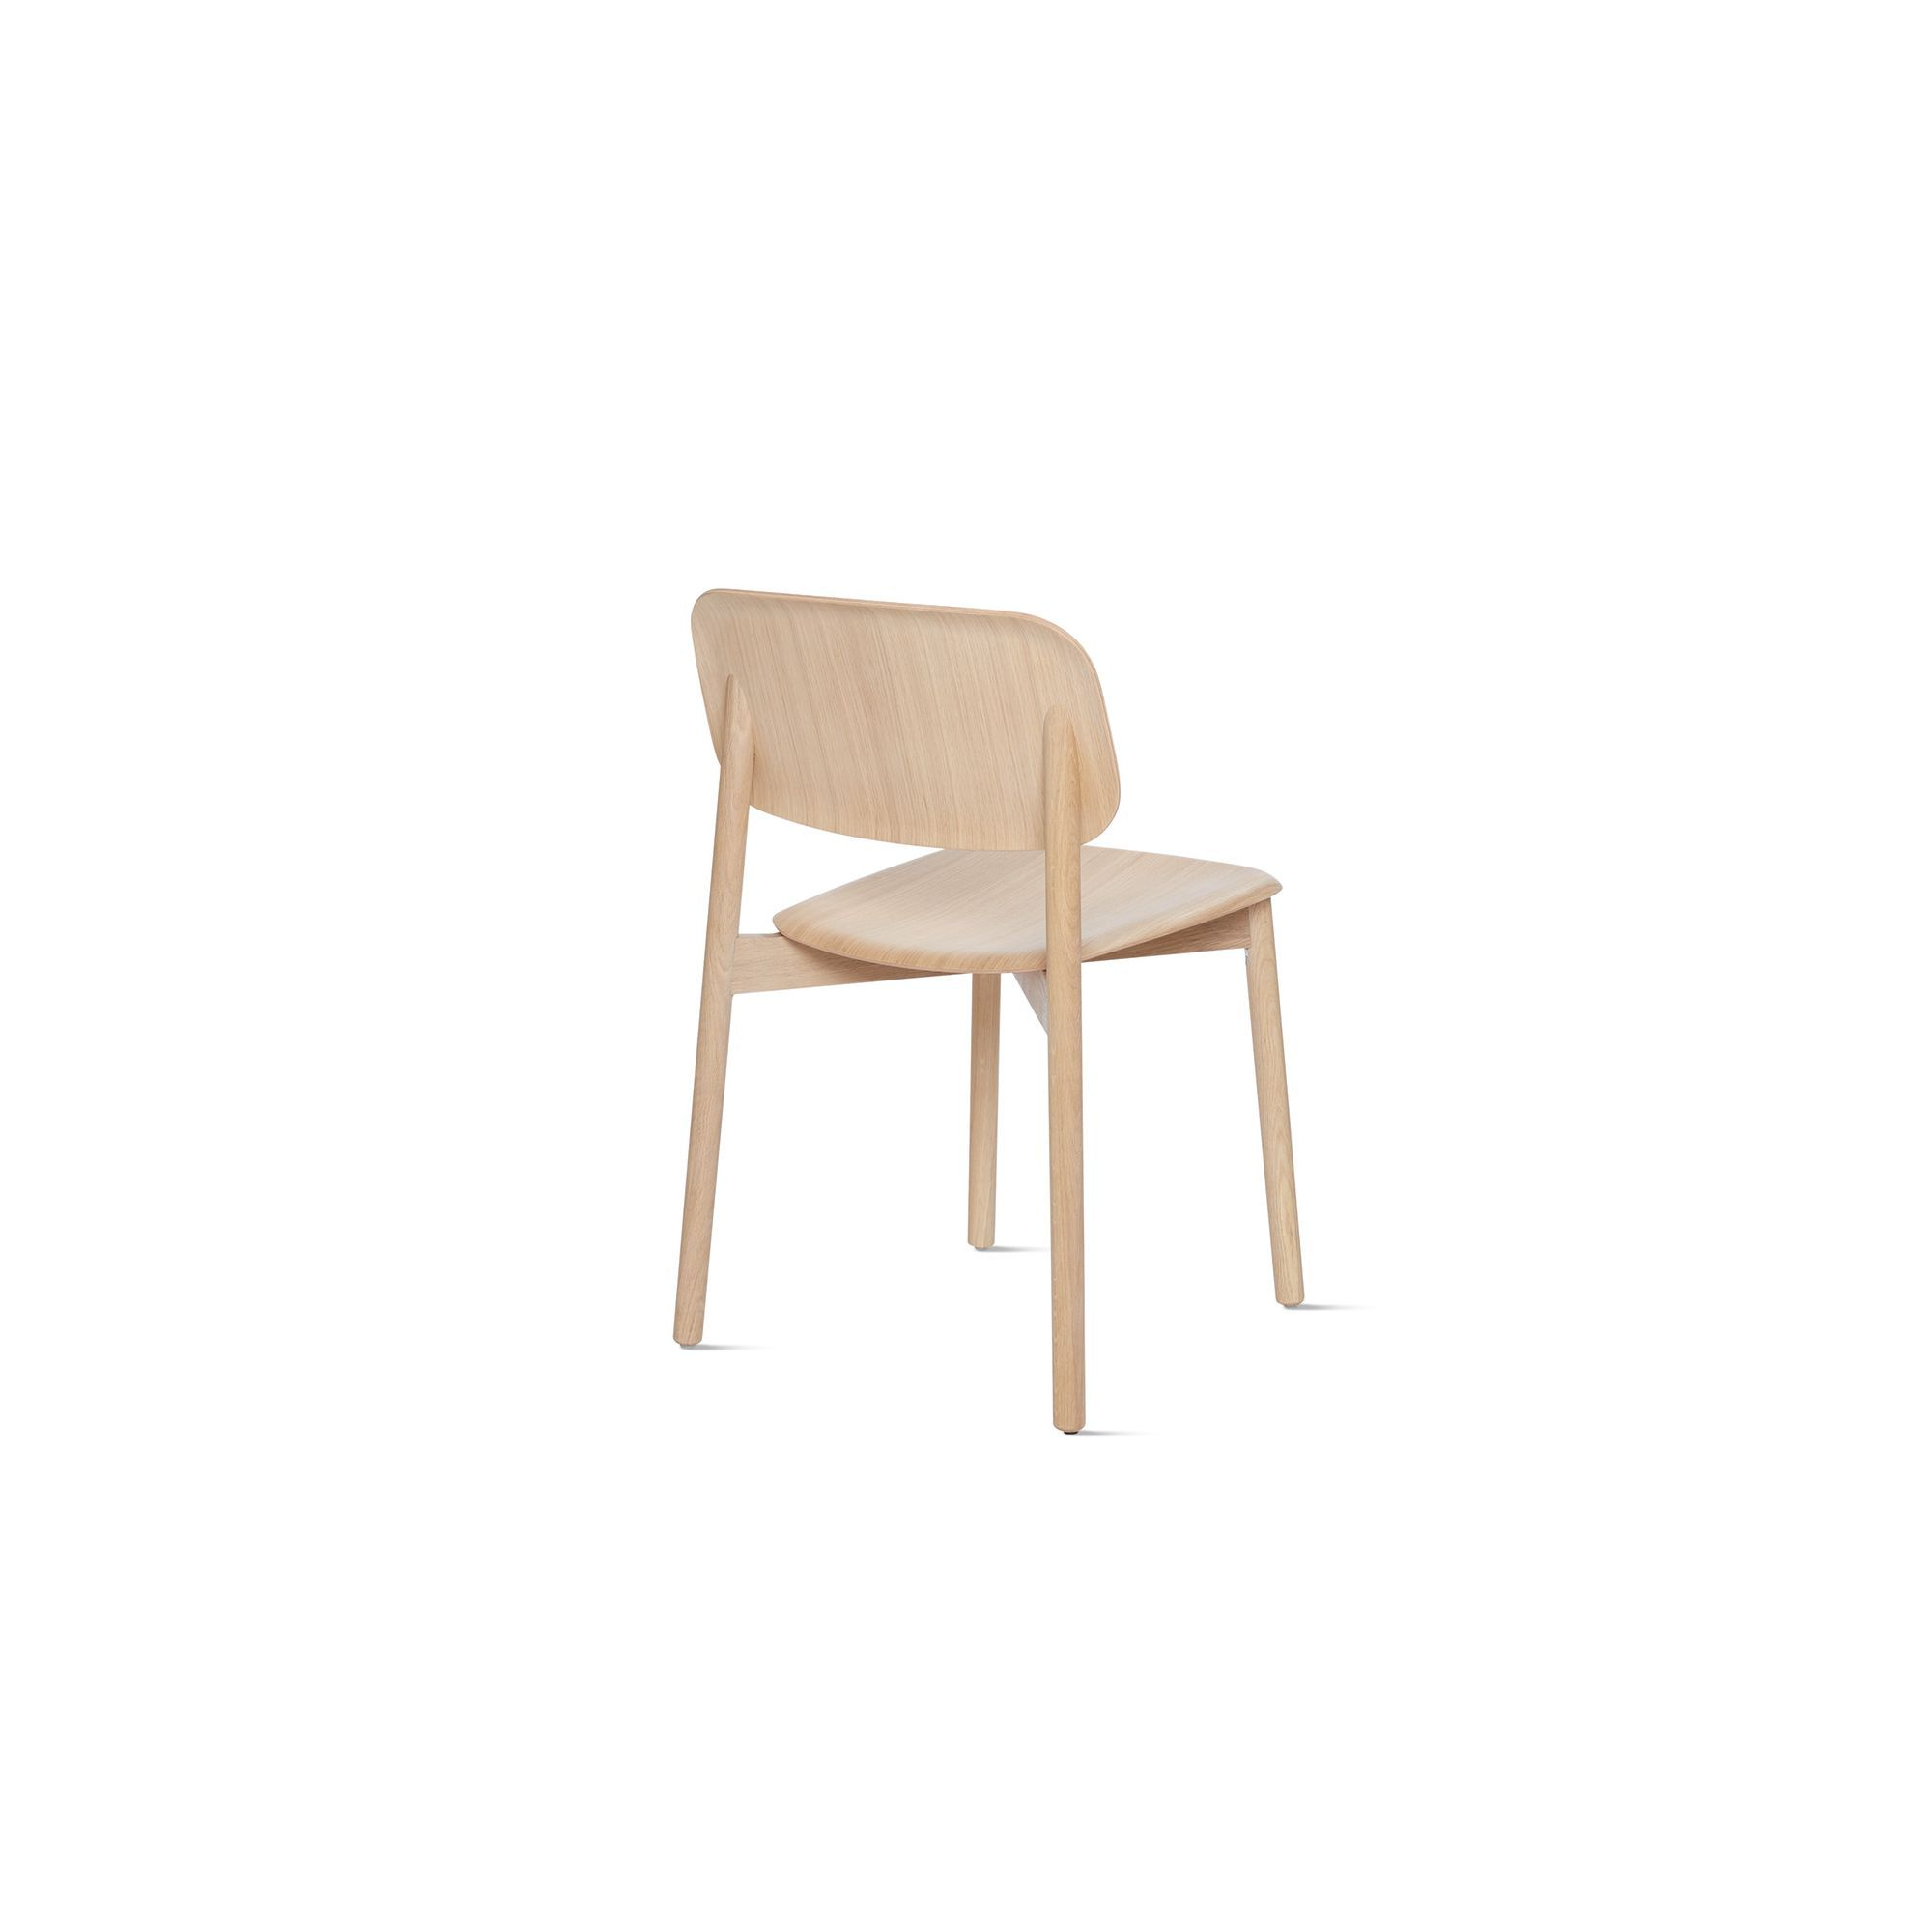 About A Chair 12 Side Chair.Design Within Reach Soft Edge 12 Side Chair Di 2019 Dining Chair